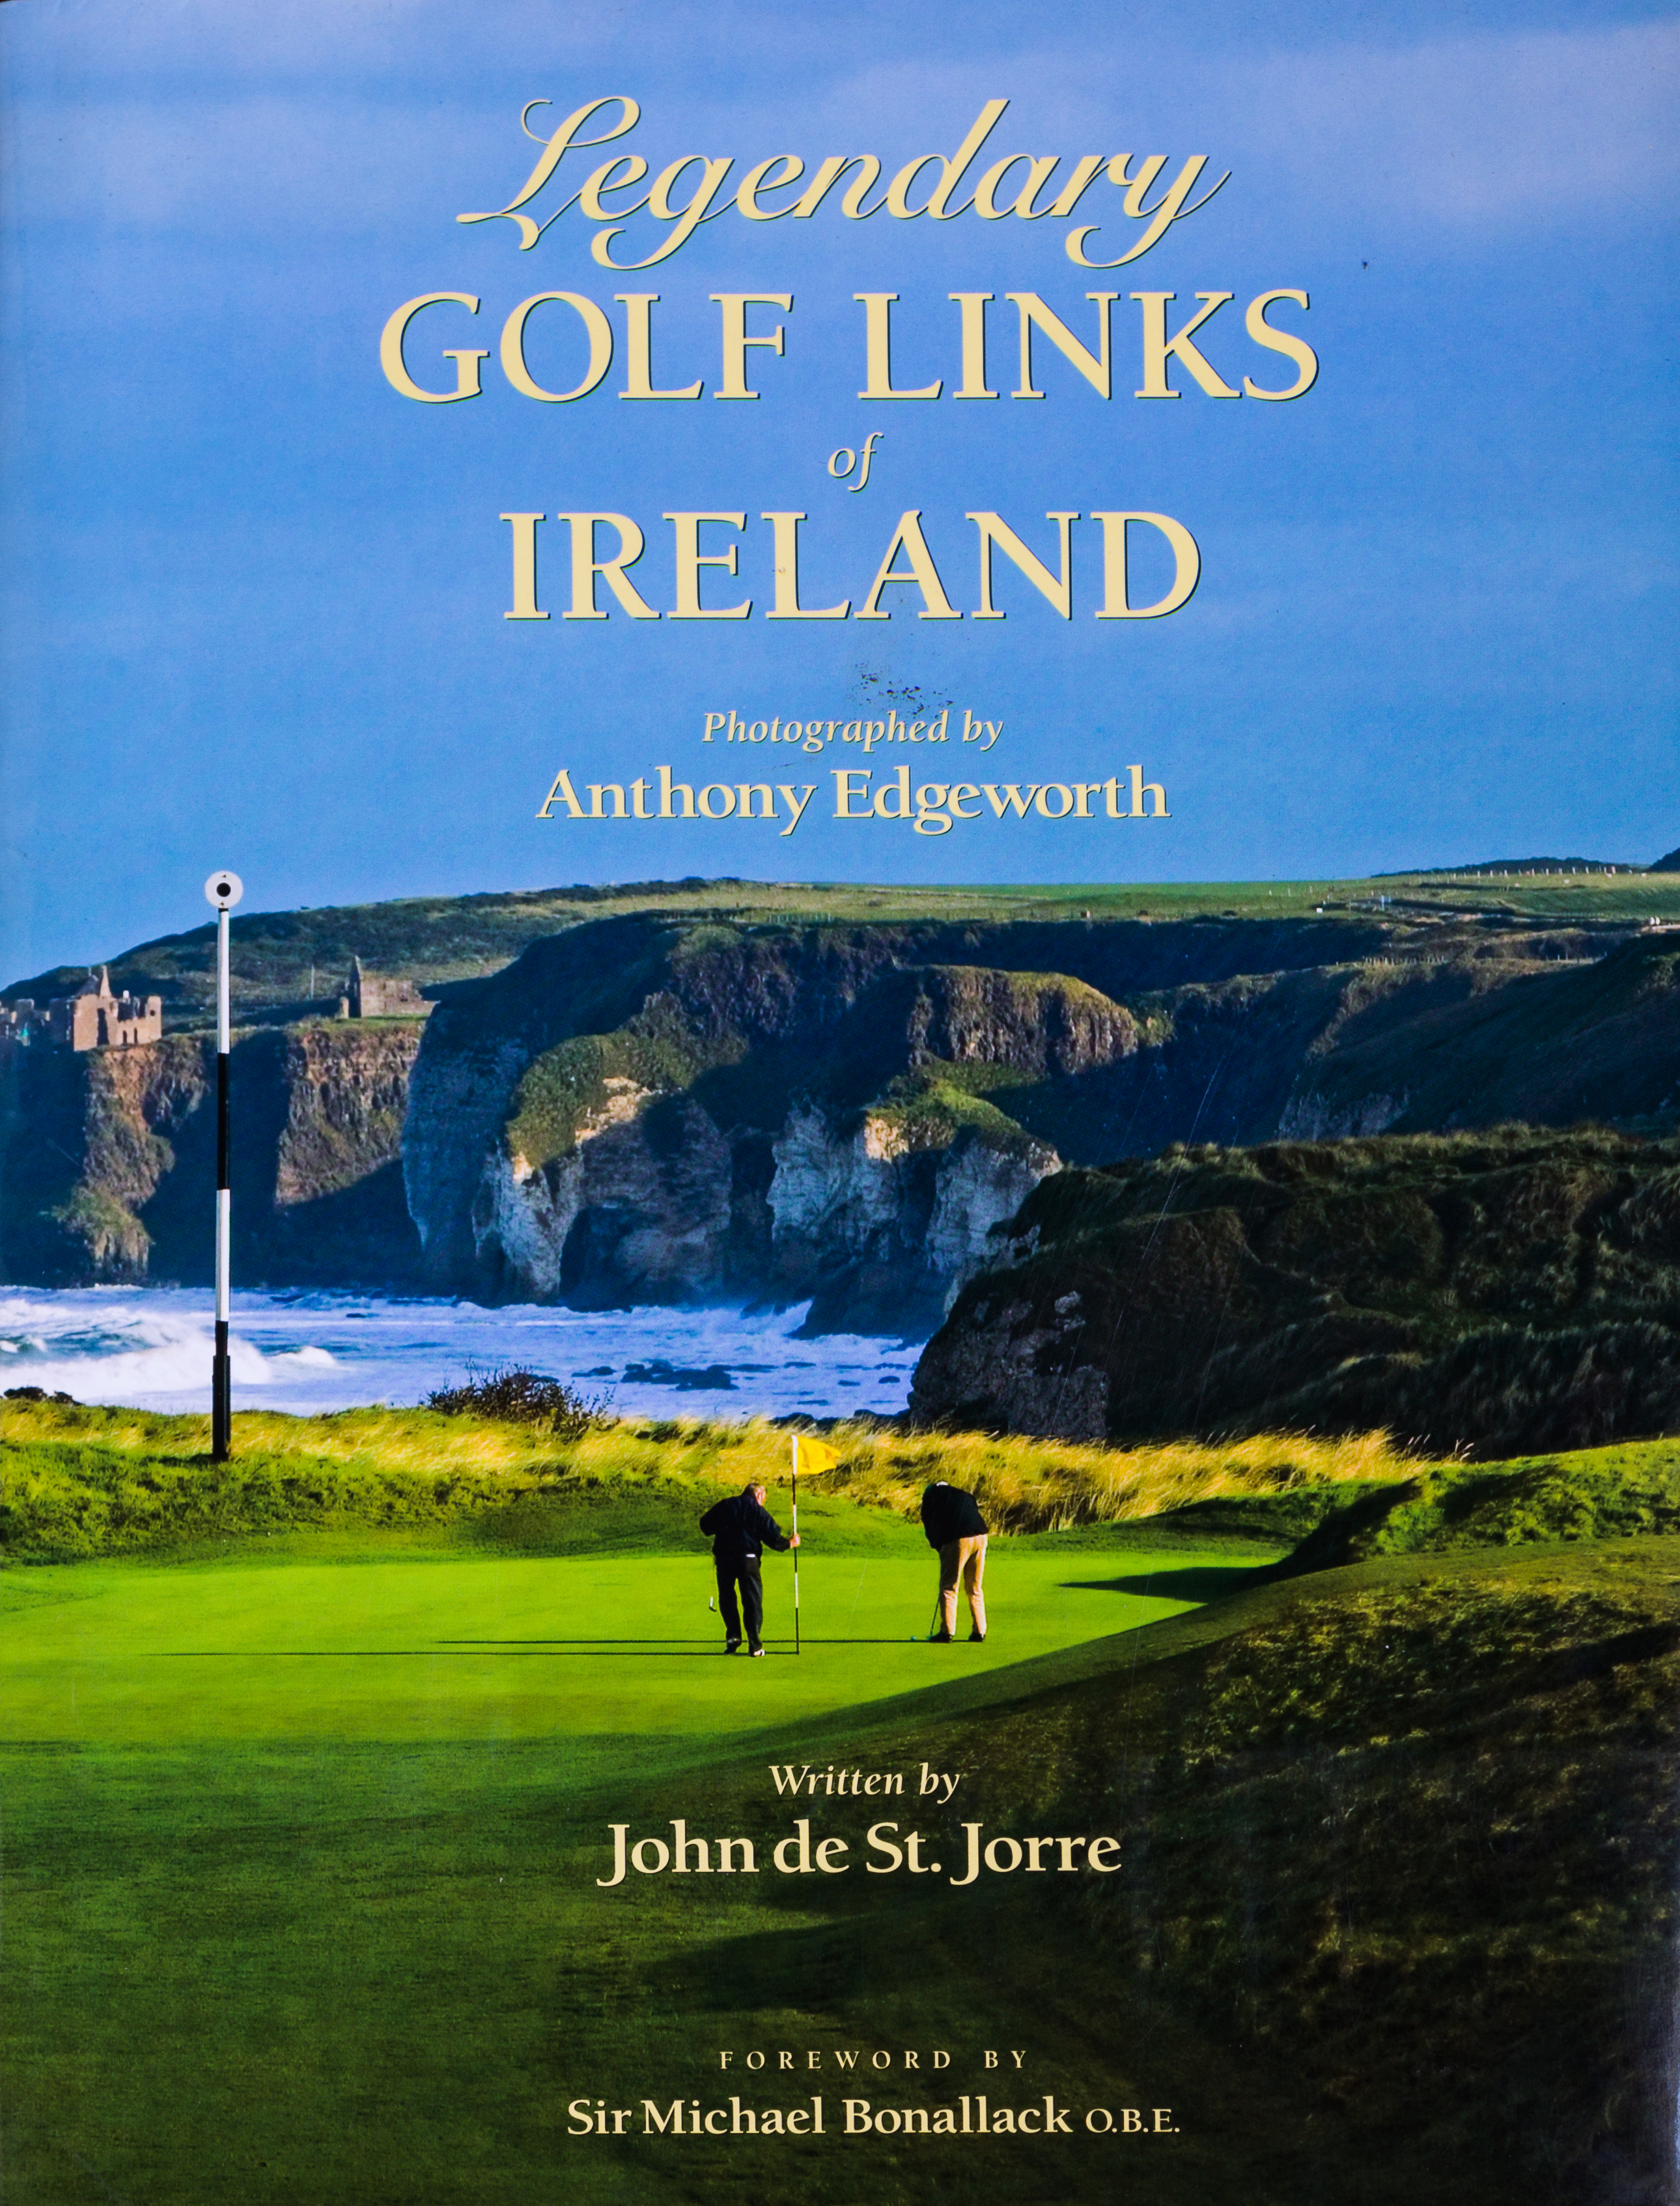 Legendary Golf Links of Ireland